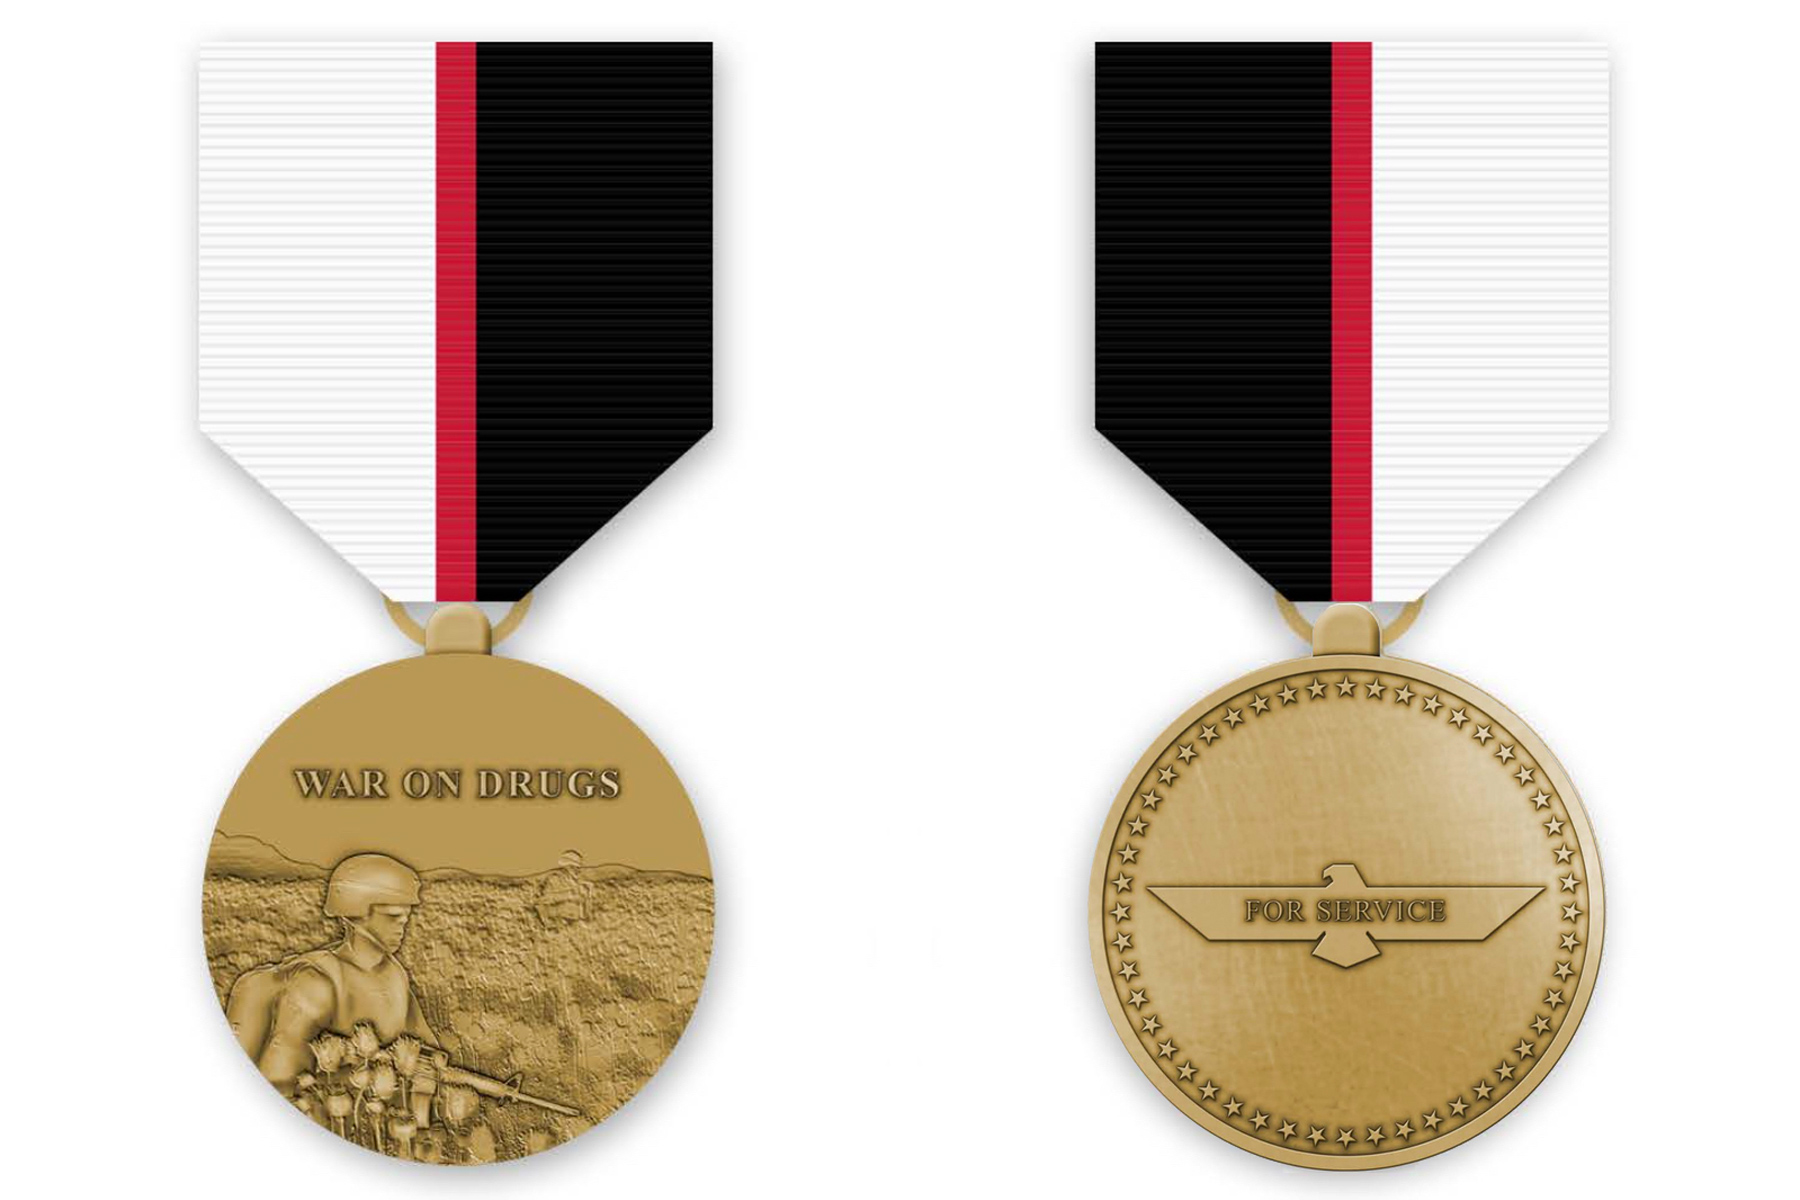 Petition Would Create Military Medal to Honor Those Fighting in the 'War on Drugs'